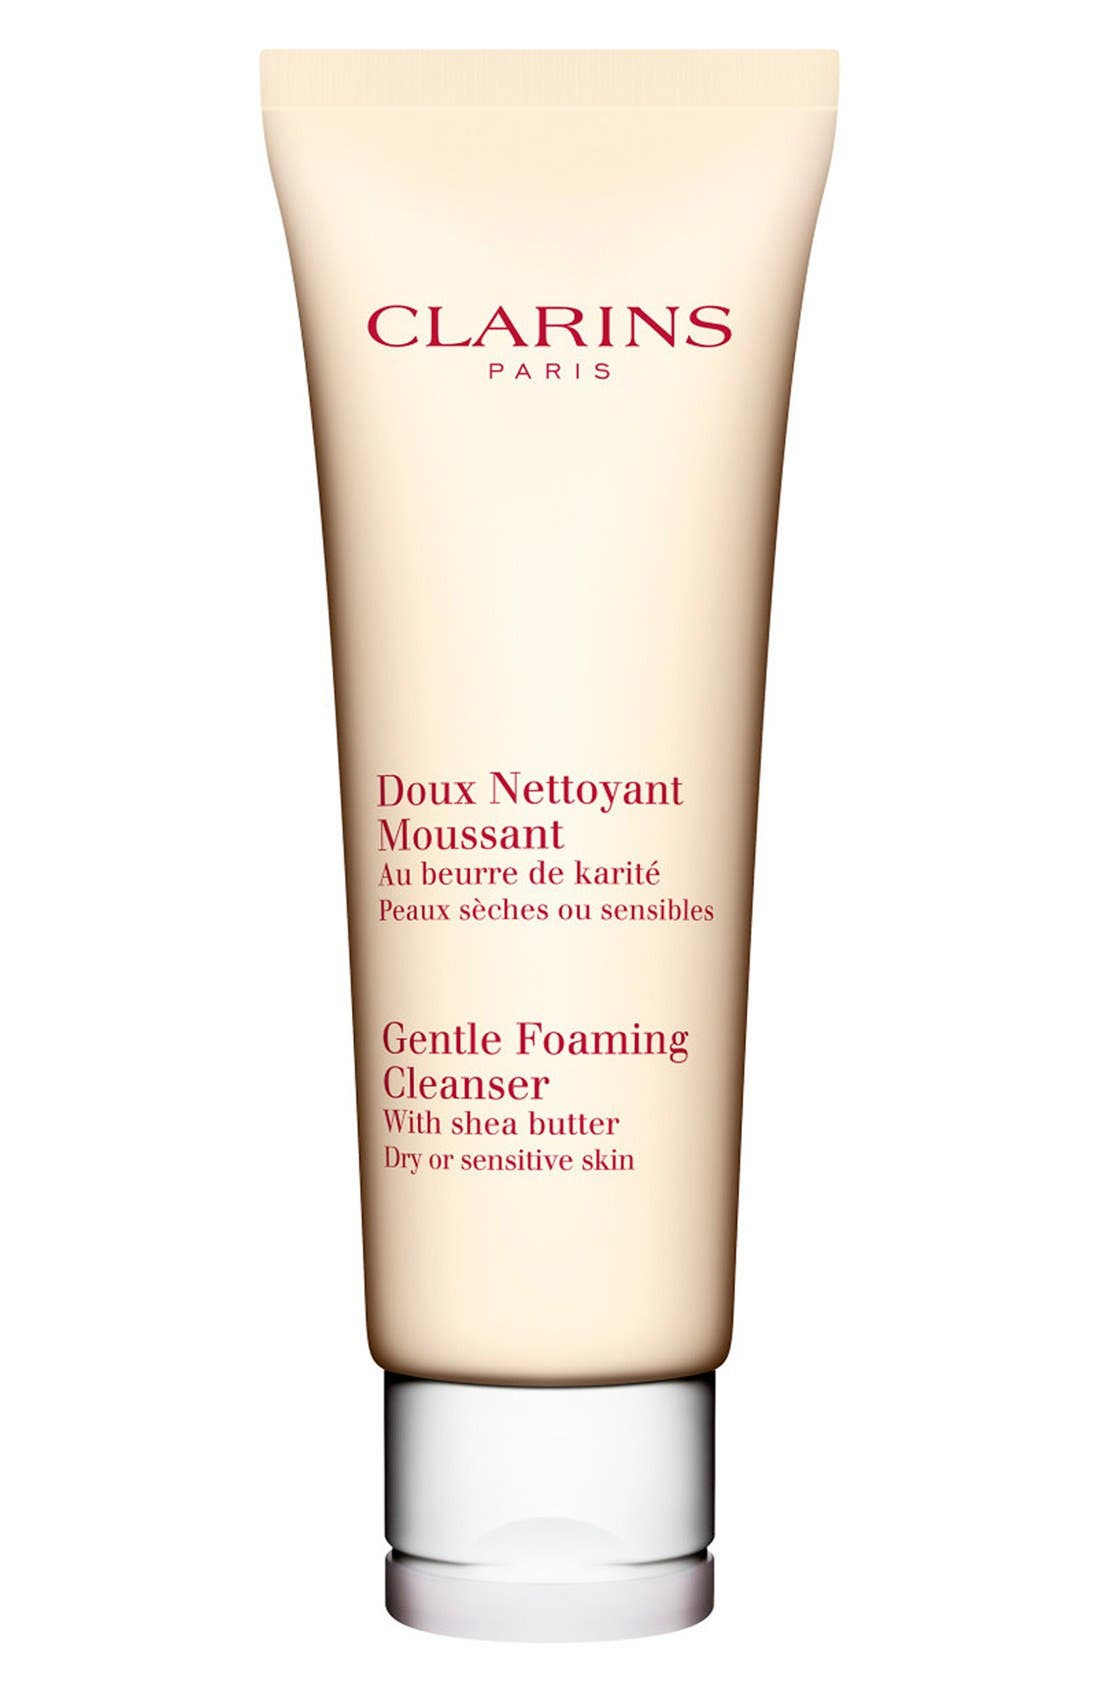 CLARINS Gentle Foaming Cleanser with Shea Butter for Dry/Sensitive Skin Types, Main, color, NO COLOR